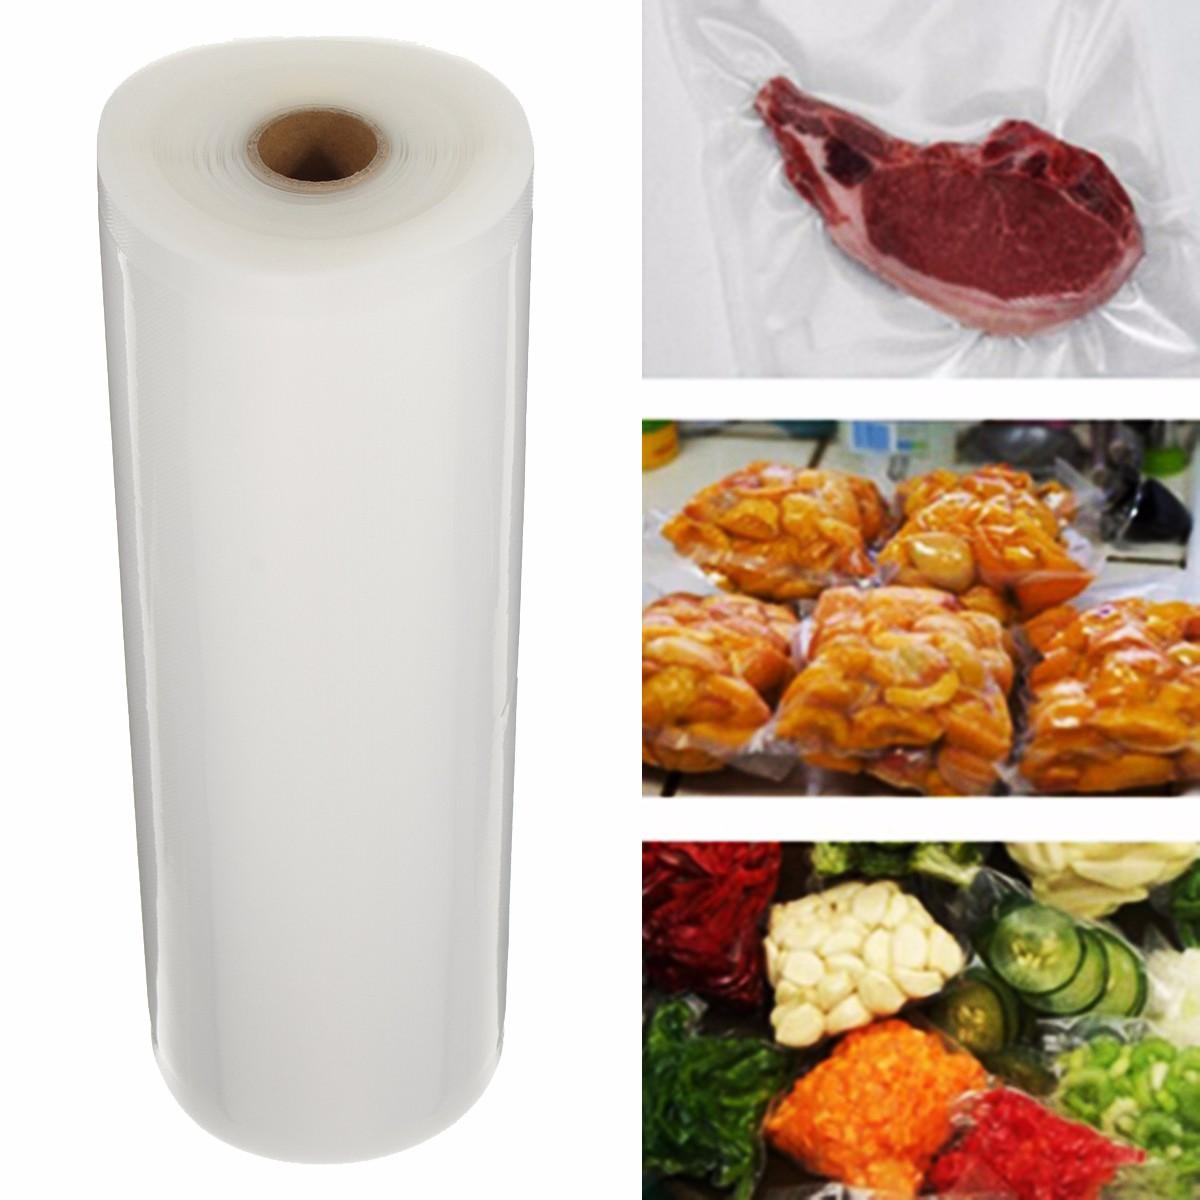 Eco Friendly Home Garden Excellent Quality Vacuum Sealing Roll Bag Storage Food Saver Kitchen Plastic Heat Seal Bags